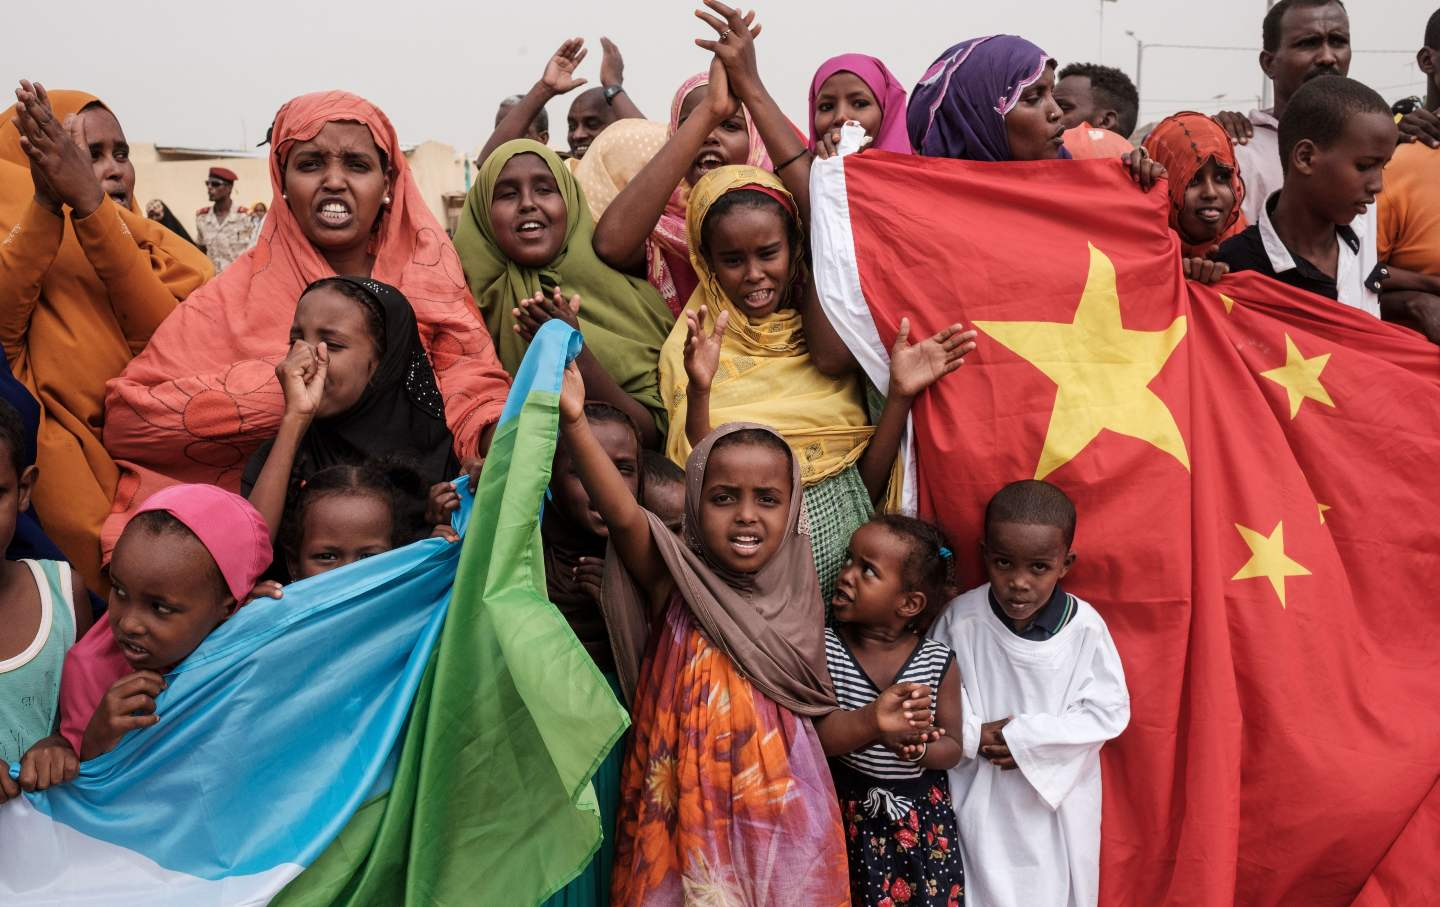 Chinese and Djiboutian national flags